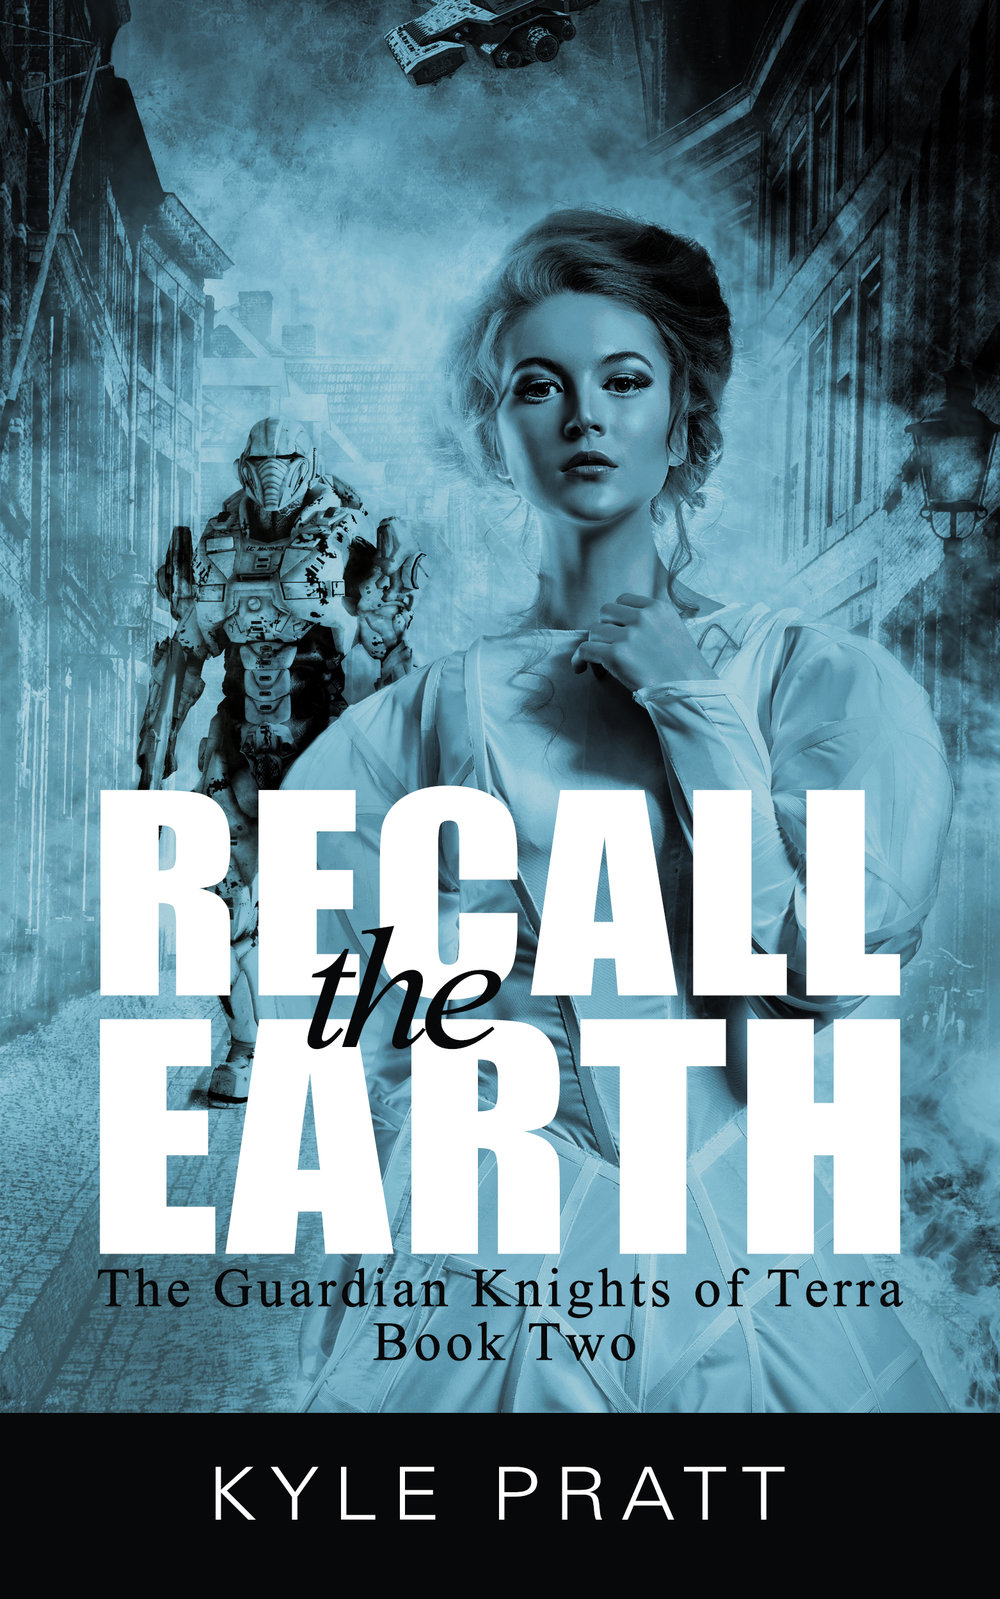 Recall the Earth Book two in the Guardian Knights of Terra series. Lucas's sister, Katherine, smuggles Rachel to their home planet in the Devon system, but Prince Draven and the soldiers of Nightwatch are waiting there to kill them.   In battle on another world, Lucas is seriously wounded and has no idea of the danger facing his sister and Rachel, or that the Valac are fighting to surround his home world. His entire family may die before he can do anything to save them.